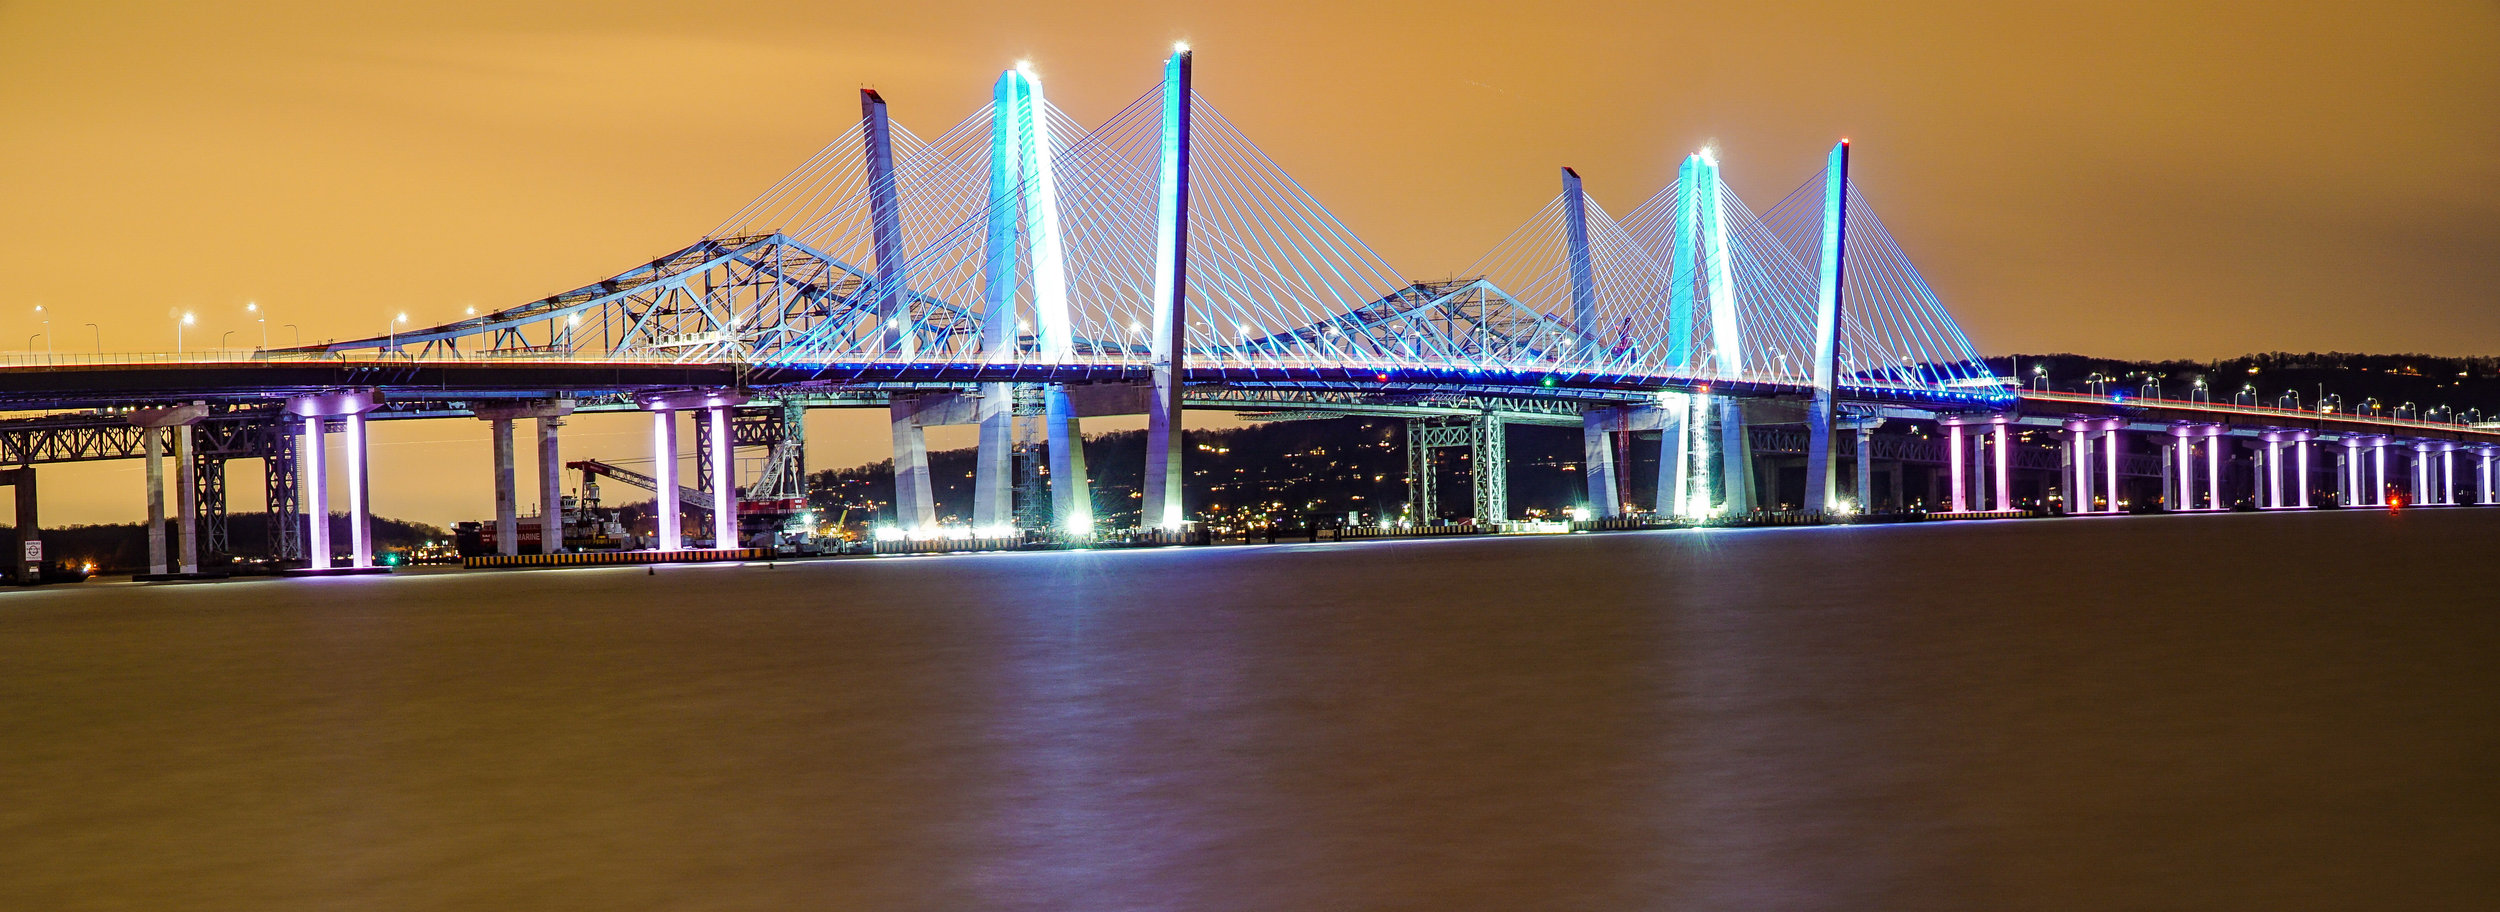 Tappan Zee Bridge.jpg